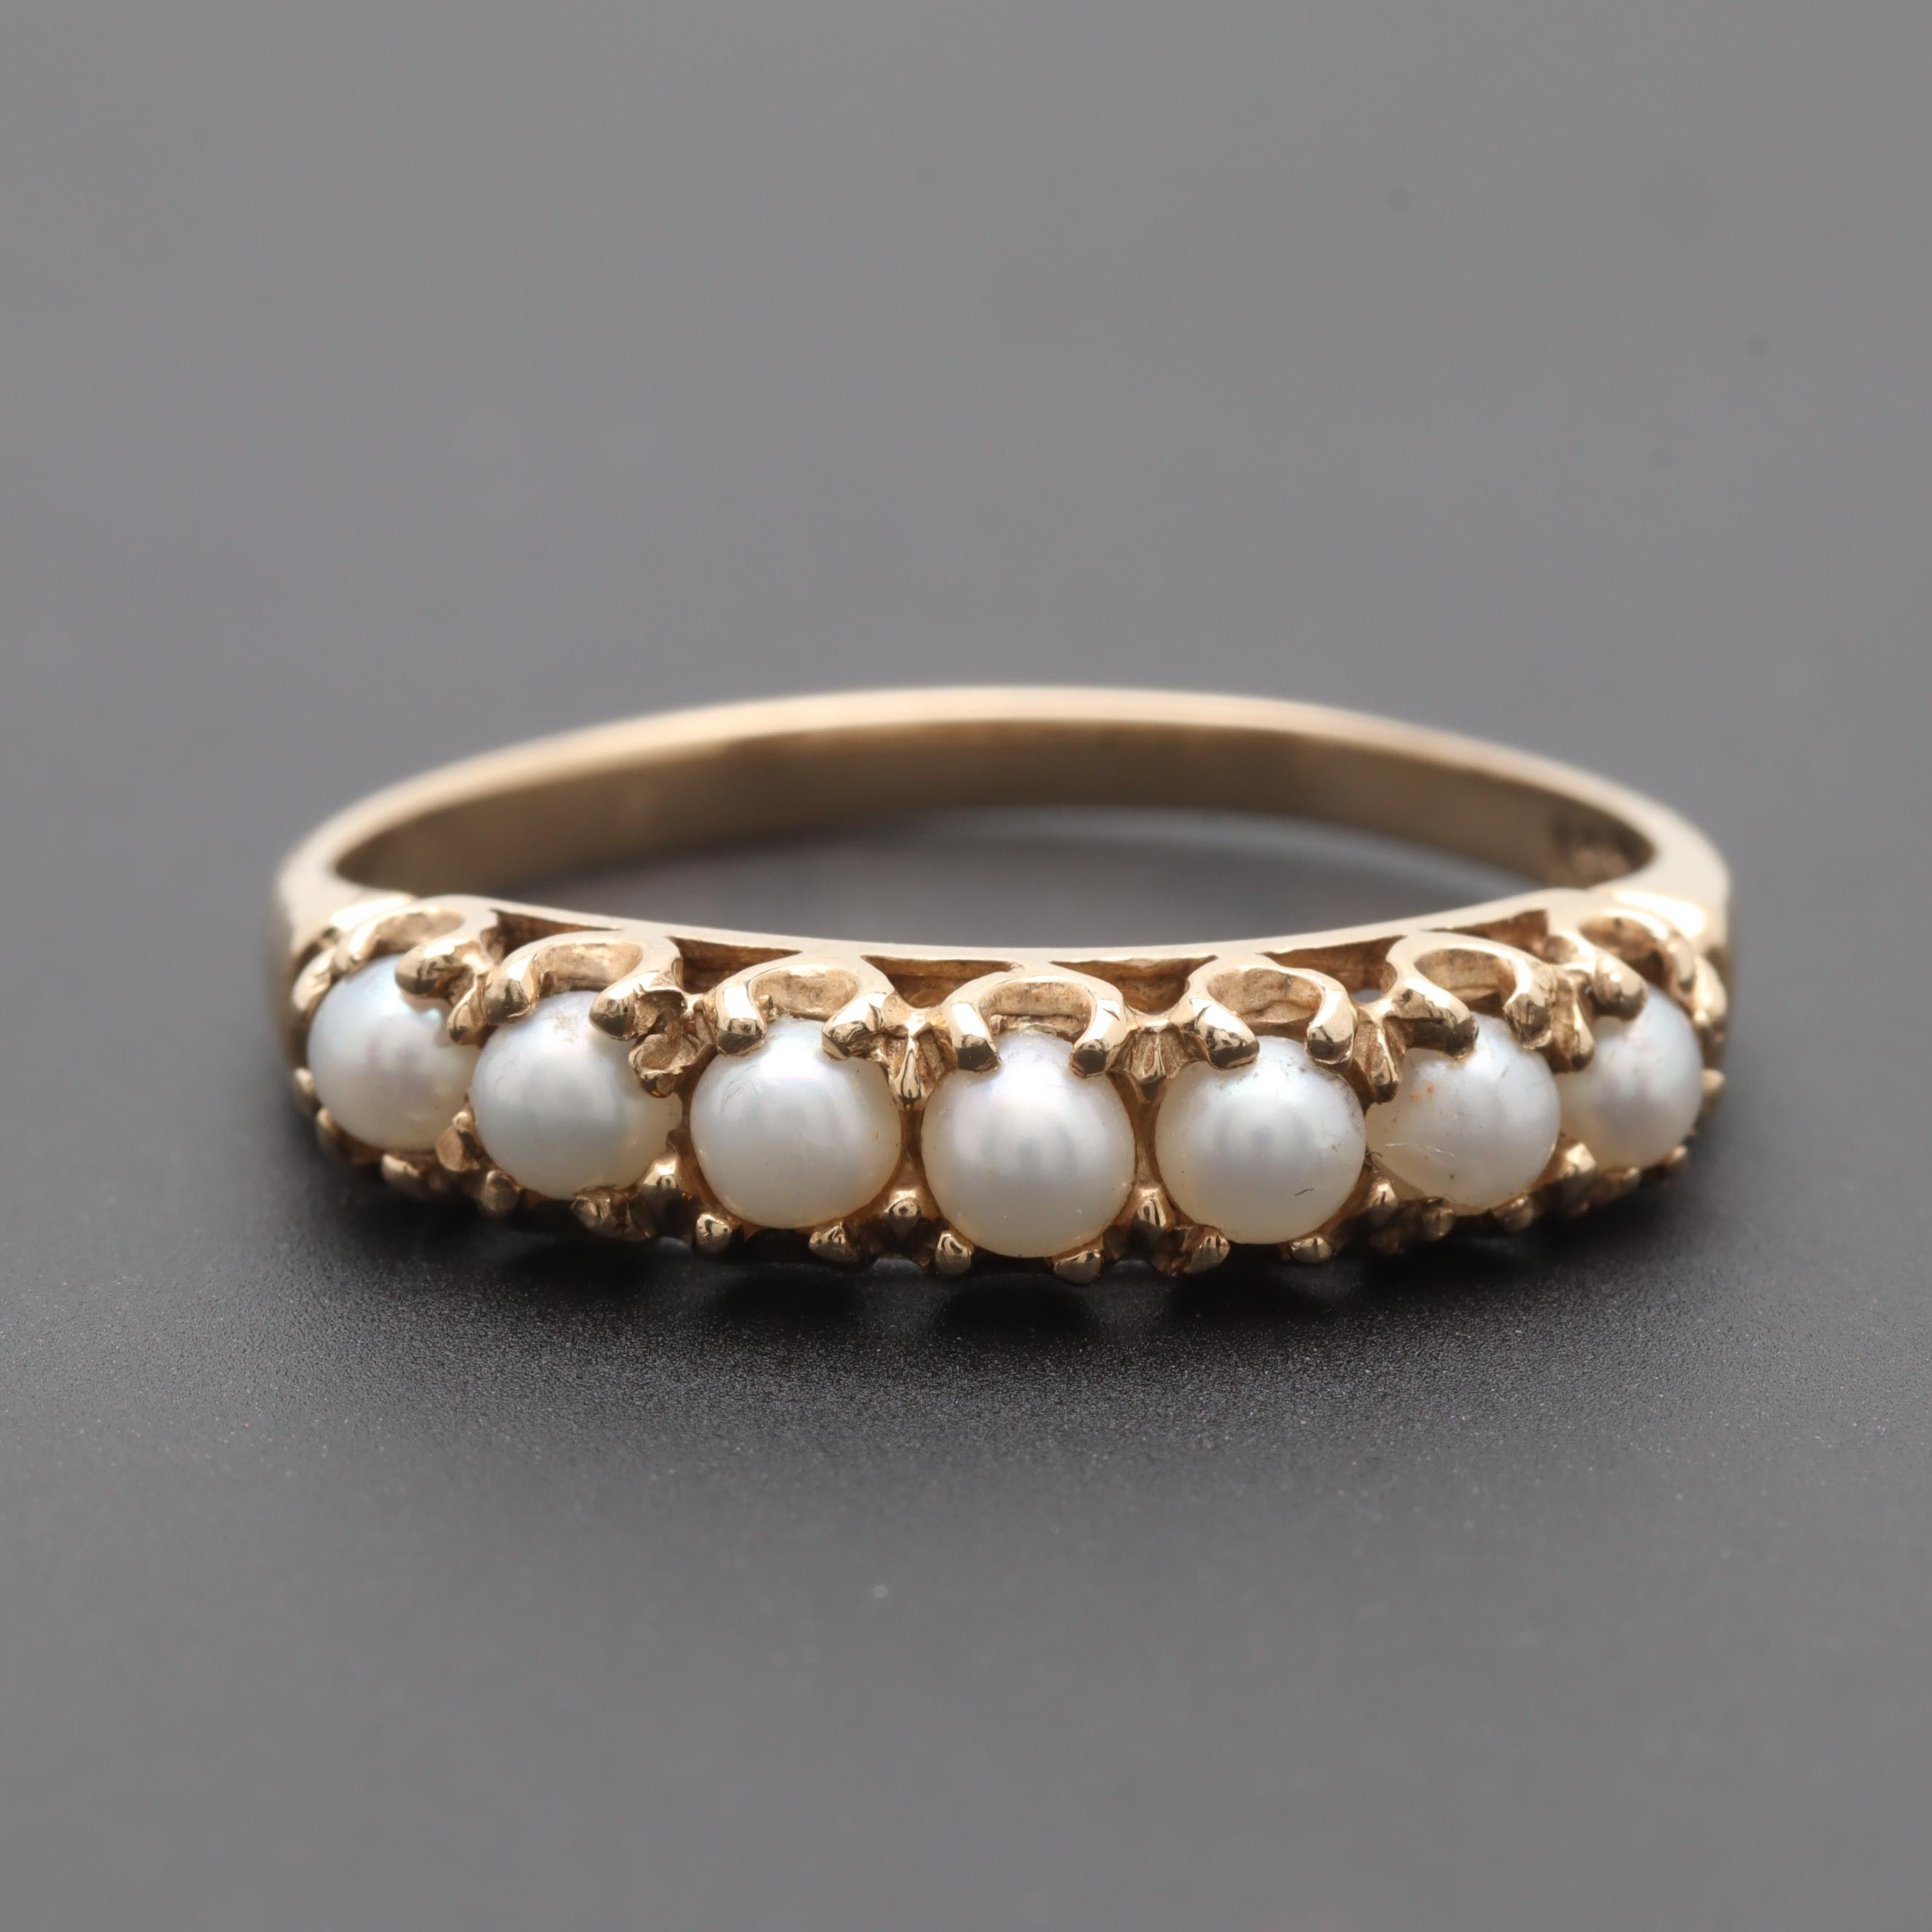 Vintage 14K Yellow Gold Cultured Pearl Ring